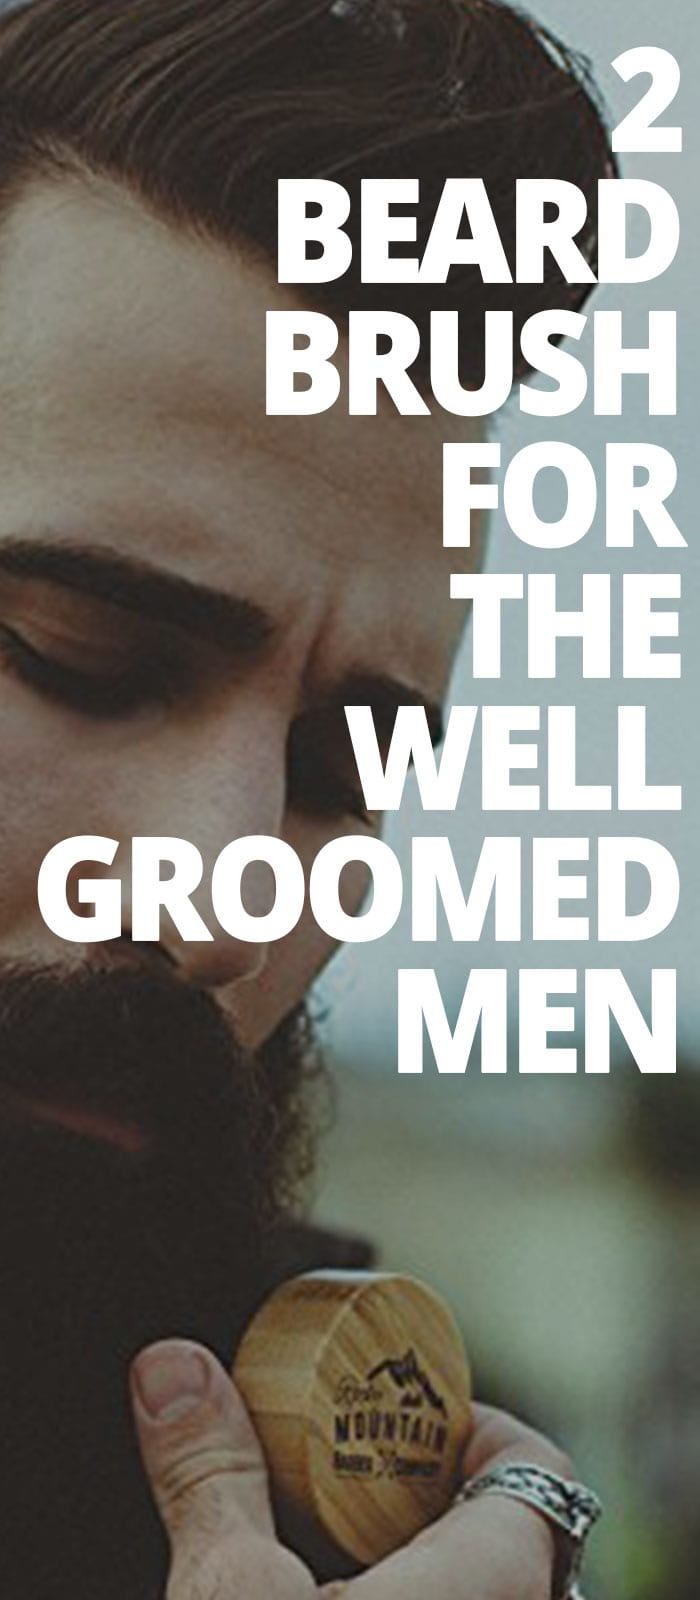 BEARD-BRUSH-FOR-THE-WELL-GROOMED-MEN